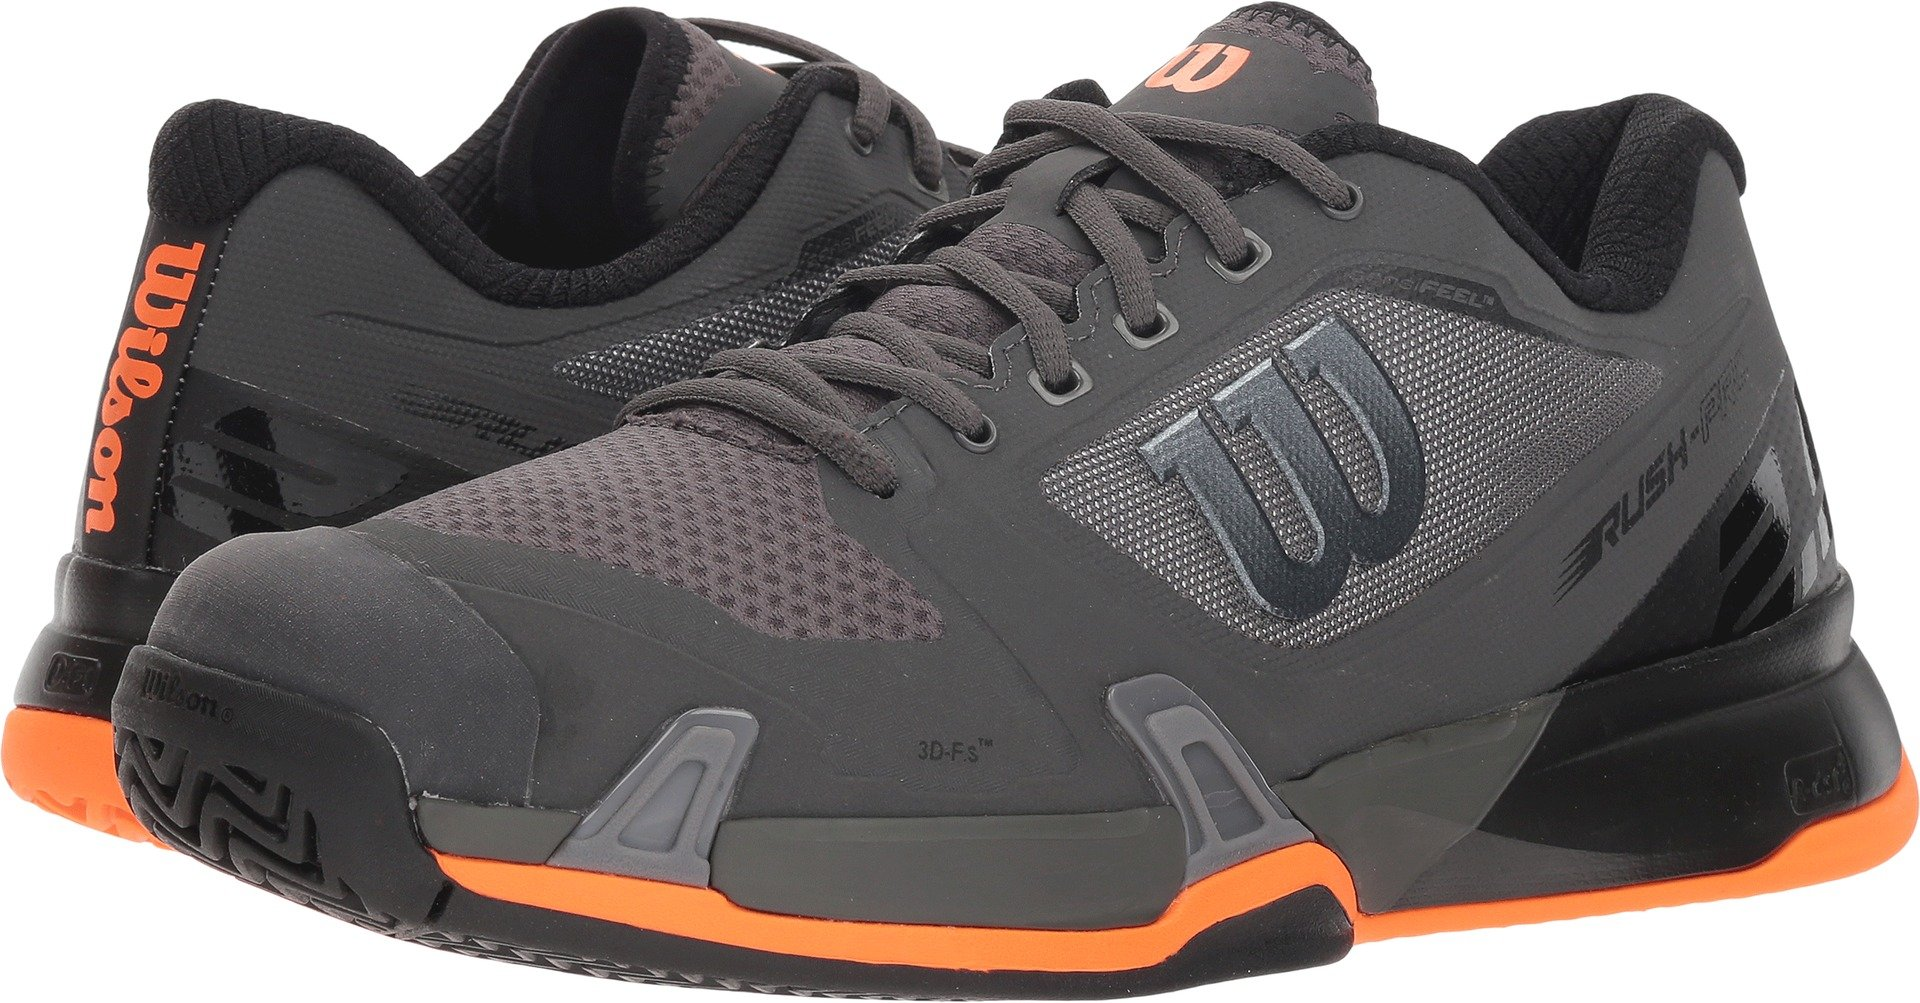 Wilson Men's Rush Pro 2.5 Magnet/Black/Shocking Orange (Platform) 7 D US by Wilson (Image #1)